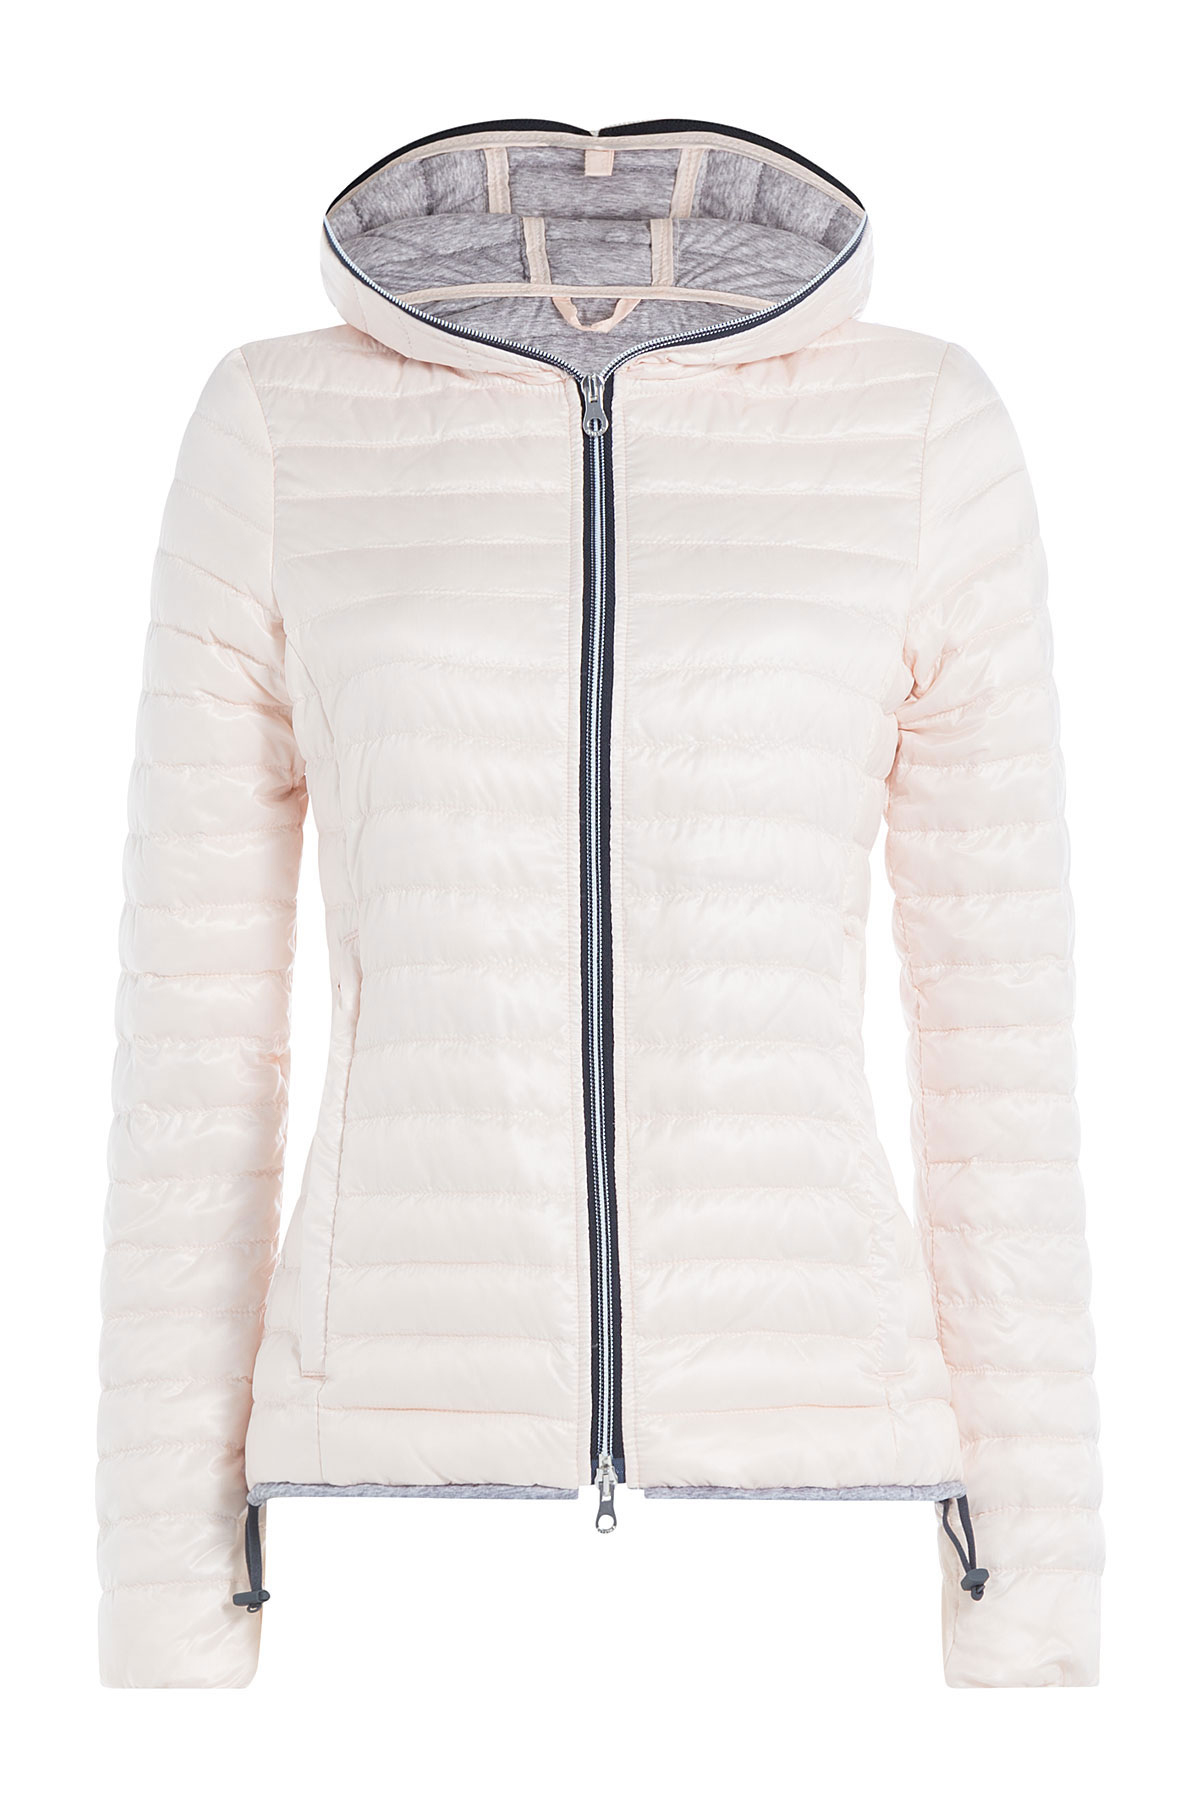 Jacket Down Lyst Duvetica Pink Rose With Hood In q6EPx1wE